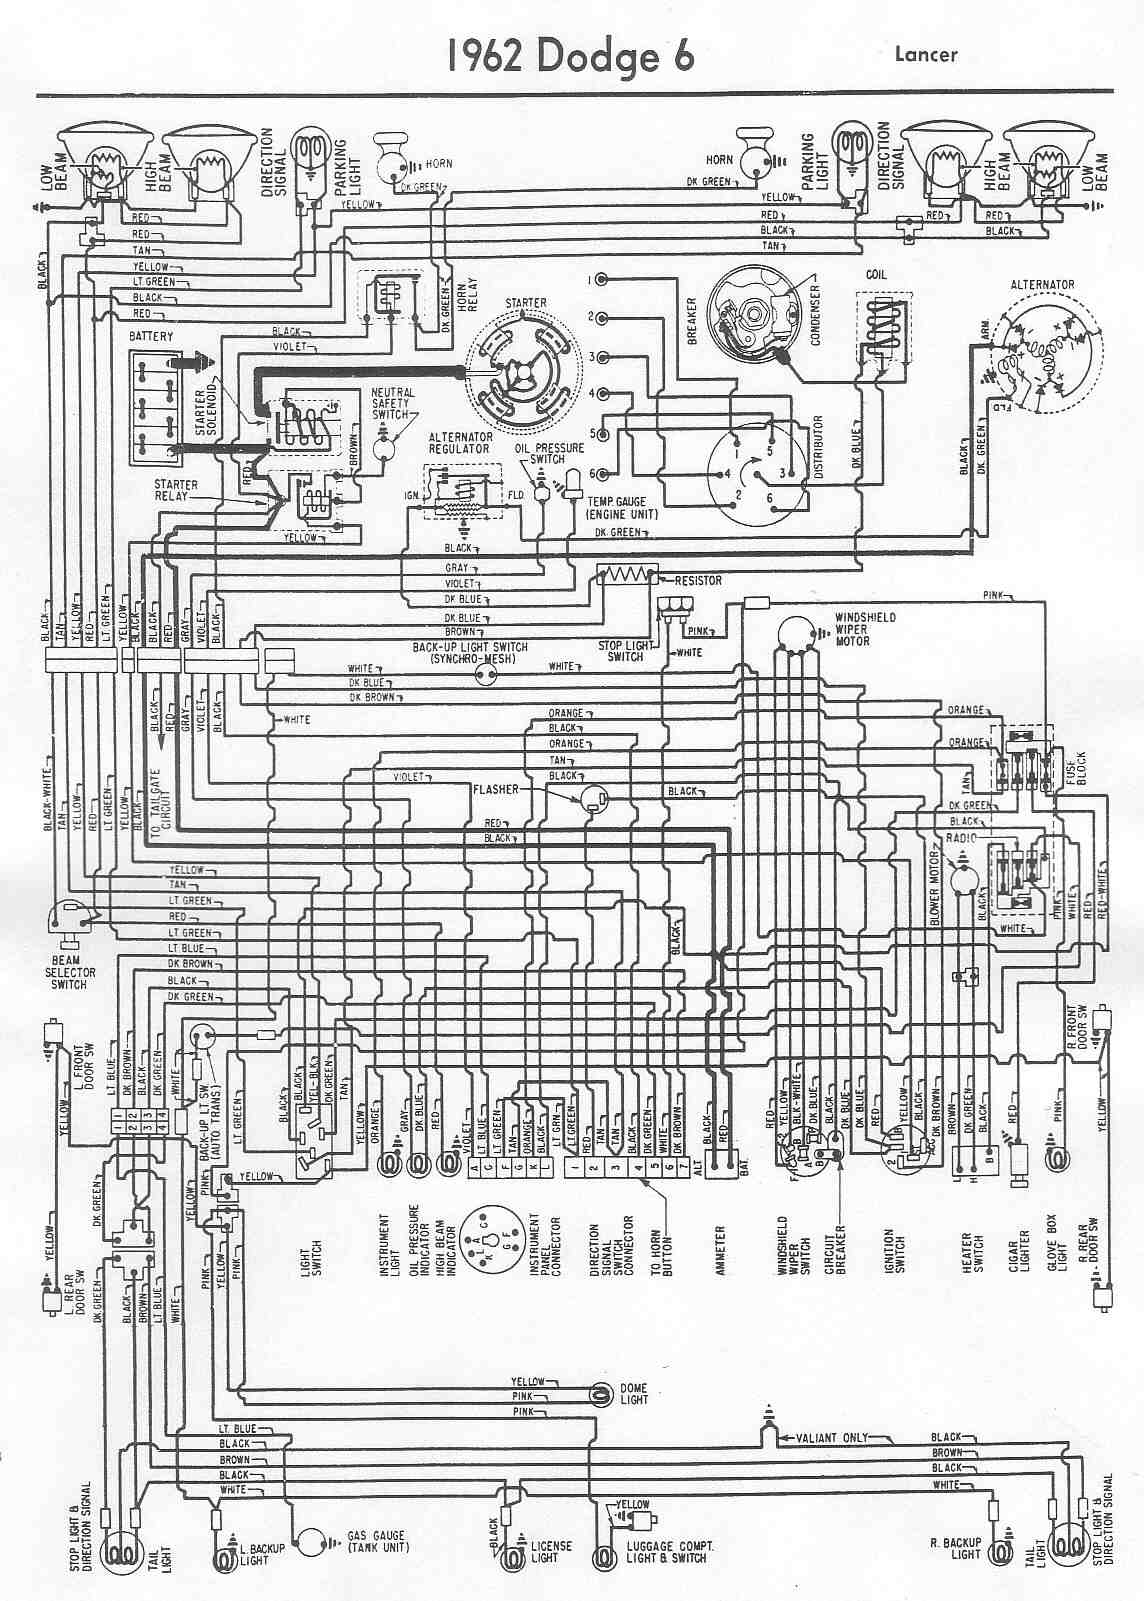 medium resolution of wiring diagram 1997 mitsubishi lancer 6 17 stromoeko de u2022wiring diagram 1997 mitsubishi lancer manual